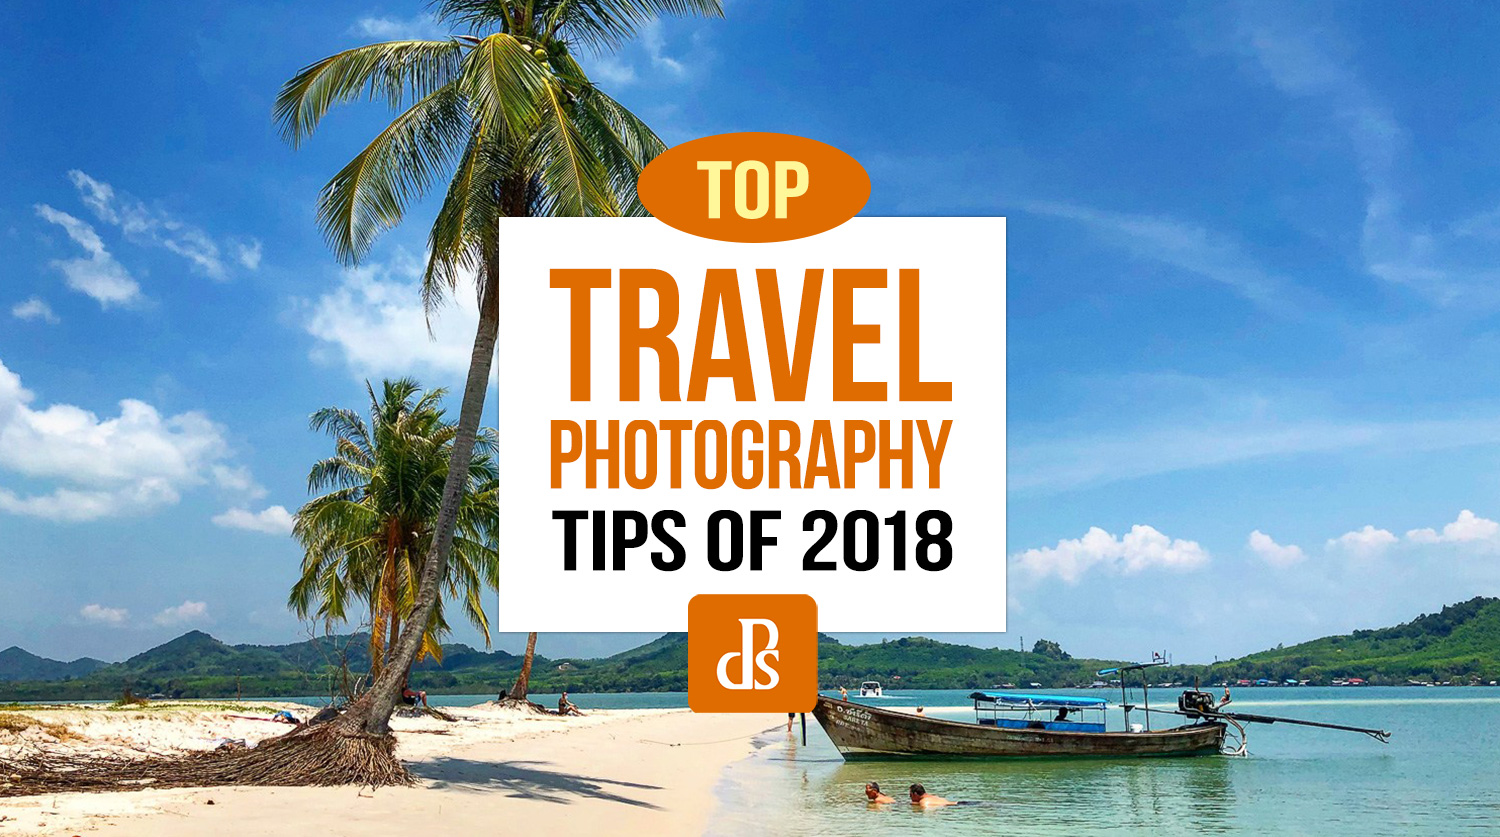 https://i2.wp.com/digital-photography-school.com/wp-content/uploads/2018/12/dps-top-travel-photography-tips-2018.jpg?resize=1500%2C837&ssl=1